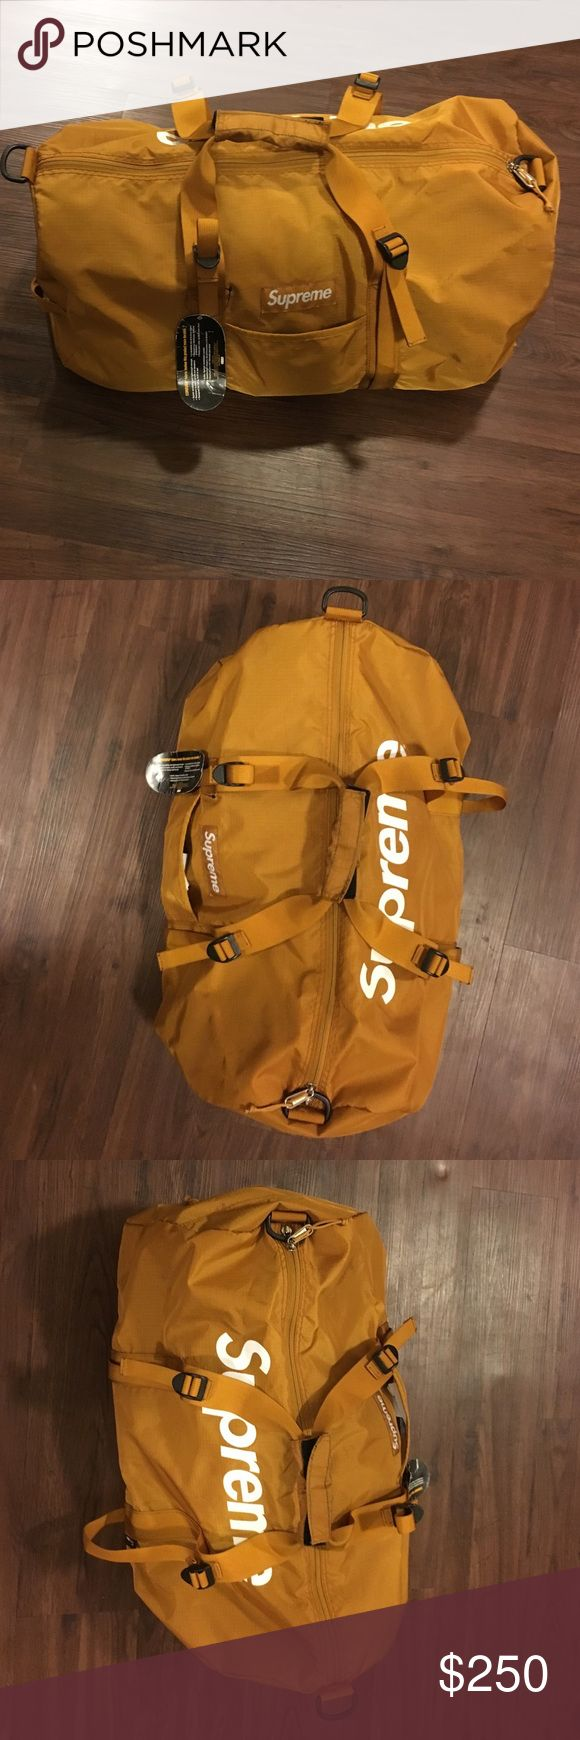 Supreme Duffle Bag Gold Supreme Duffle Bag Brand New Unused. Great gift for someone Supreme Bags Travel Bags